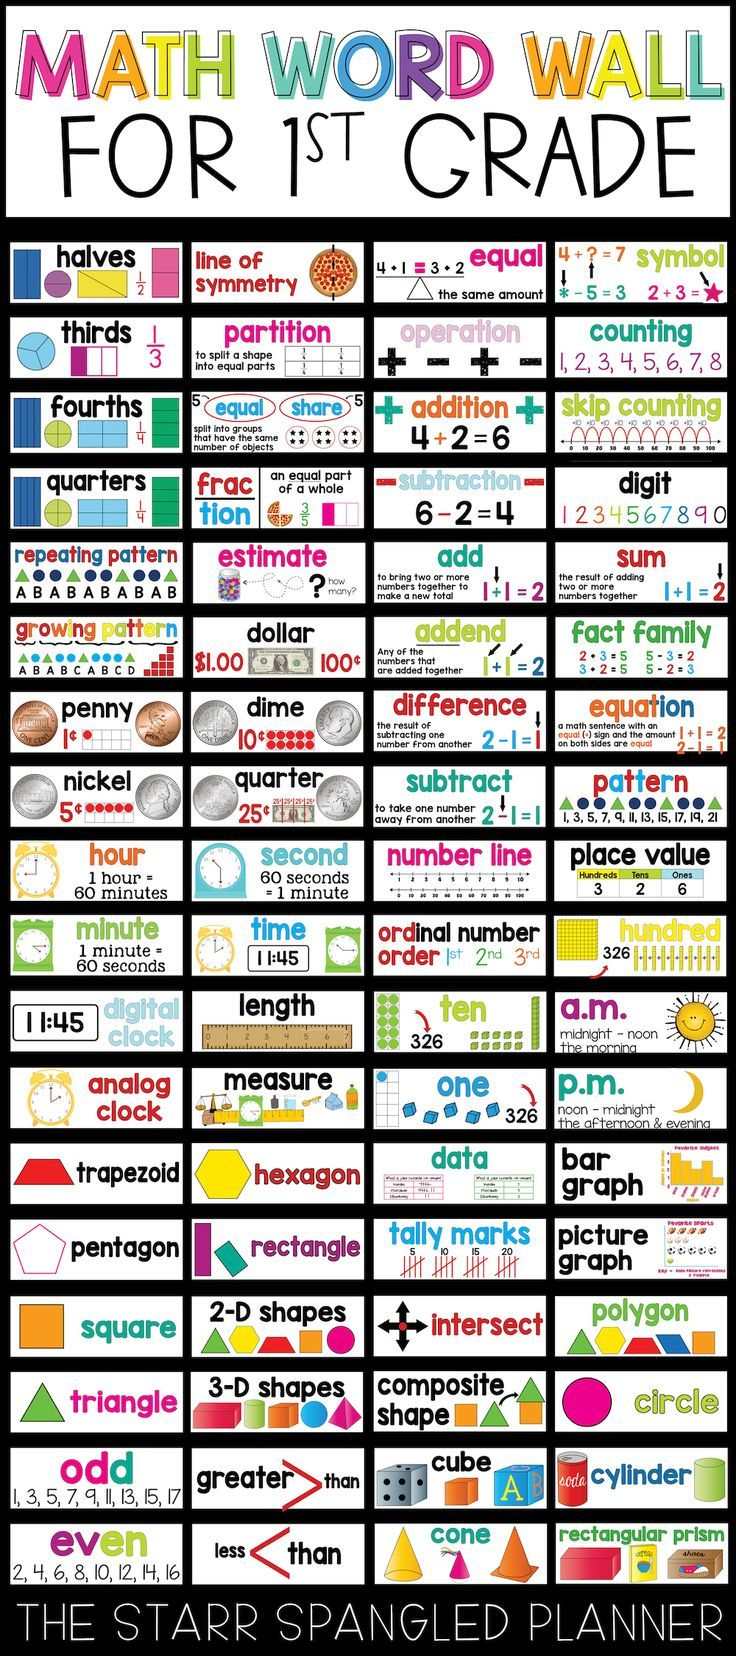 Math Word Walls have been a total game changer in my classroom! Now my First Grade students actively use the vocabulary cards on bulletin board to remind them of key concepts. These Math Word Wall Cards are also available for Kindergarten, 2nd, 3rd, 4th and 5th Grade!  Covers all Common Core Standards {Content: Operations & Algebraic Thinking, Number Sense, Place Value, Measurement & Data, Geometry}